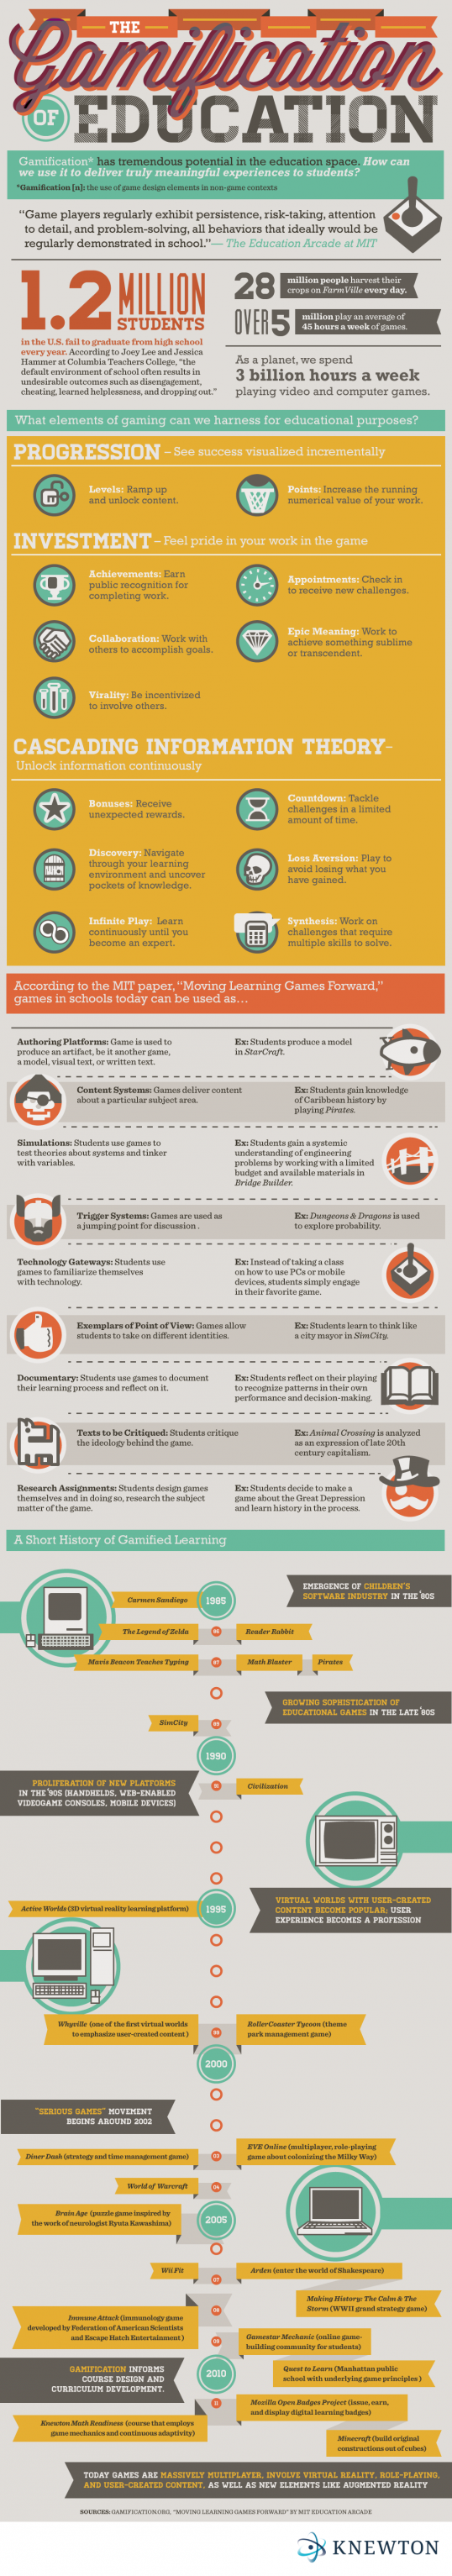 Infographics on the gamification of education.